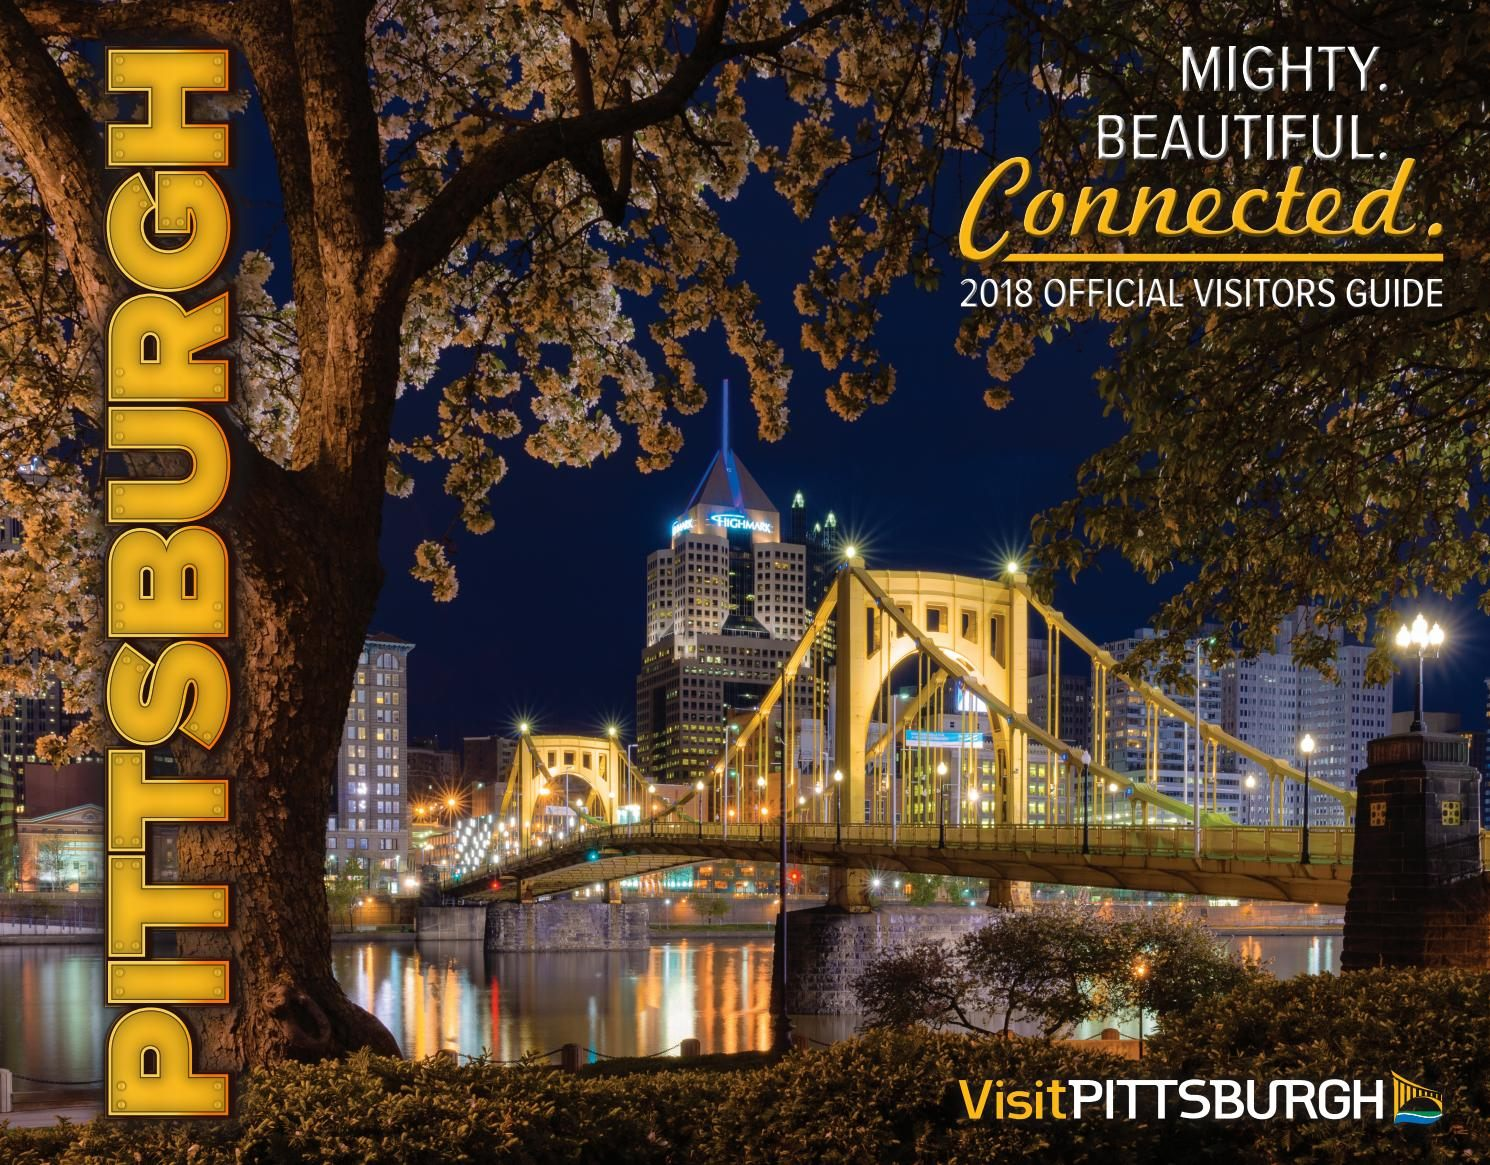 Tour De Lit Bump Charmant Pittsburgh Ficial Visitors Guide 2018 By Visitpittsburgh Issuu